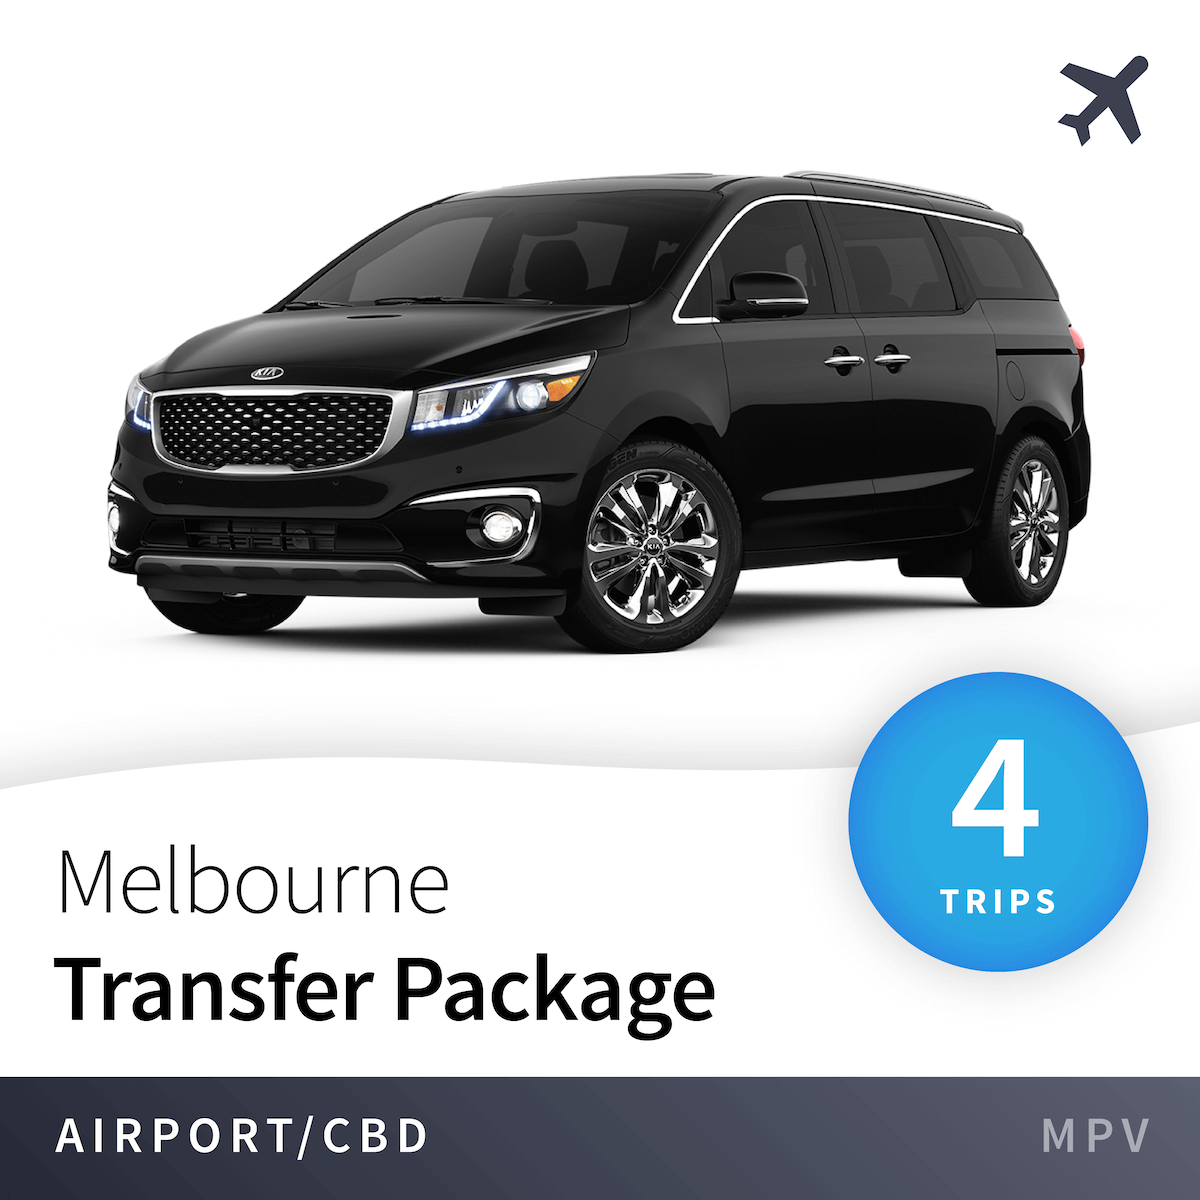 Melbourne Airport Transfer Package - MPV (4 Trips) 10